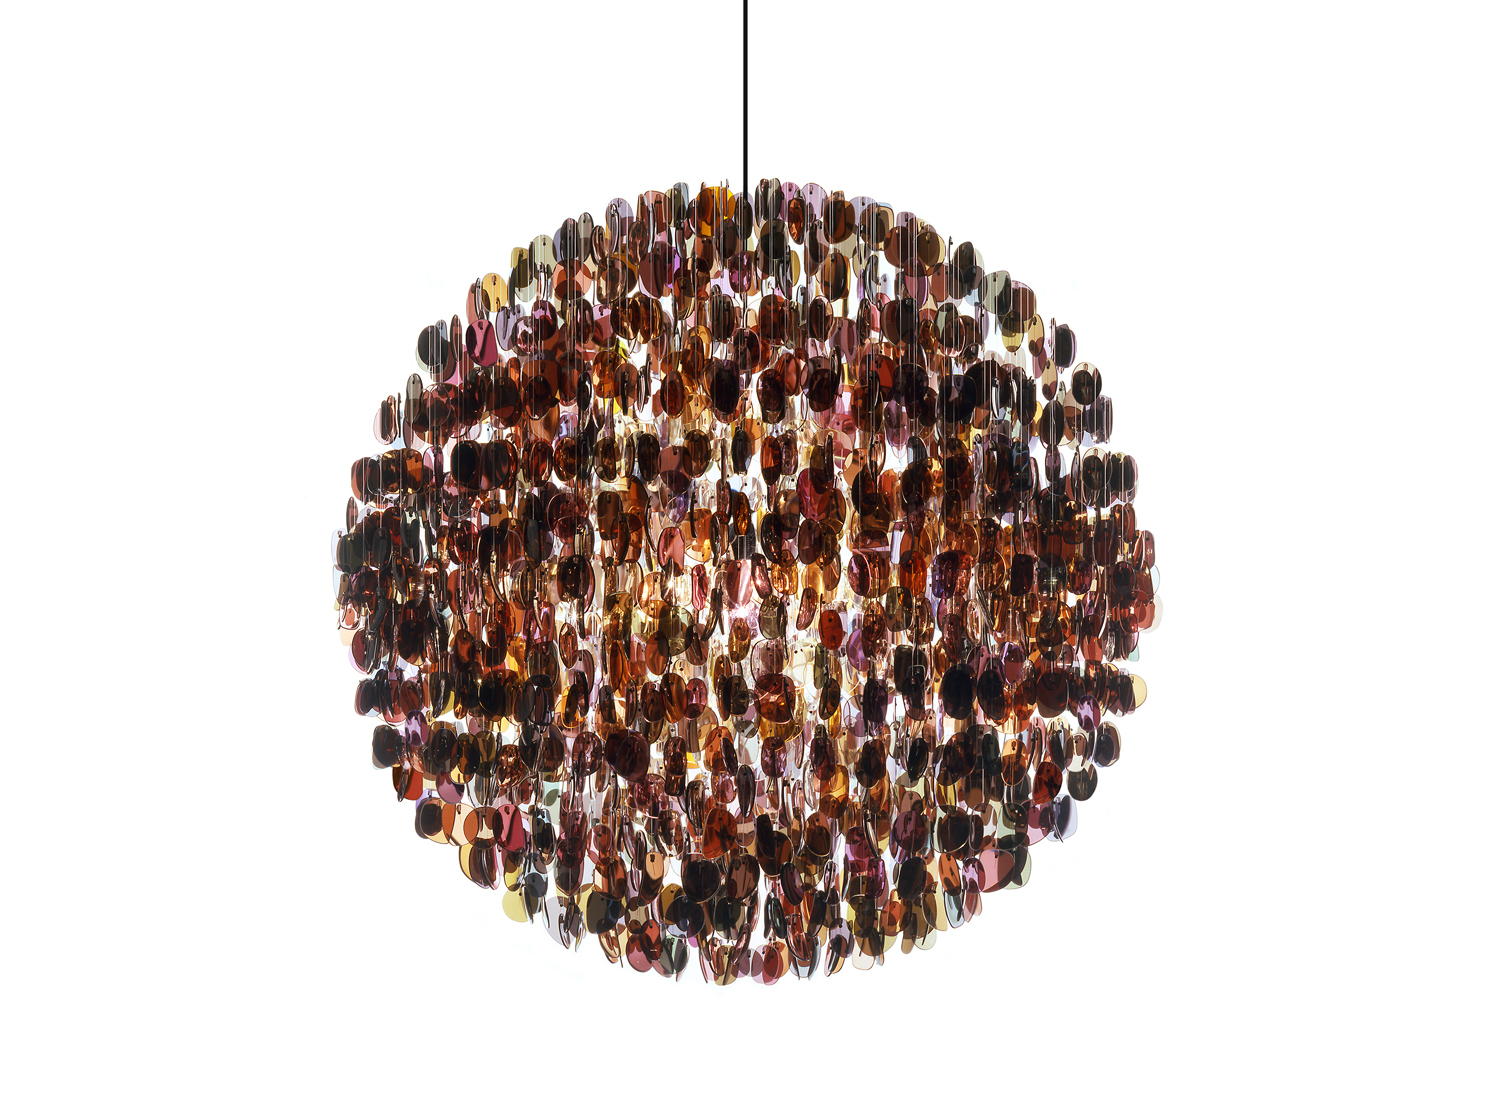 Stuart Haygarth's Opulent Chandeliers Are Made Entirely from Recycled Objects